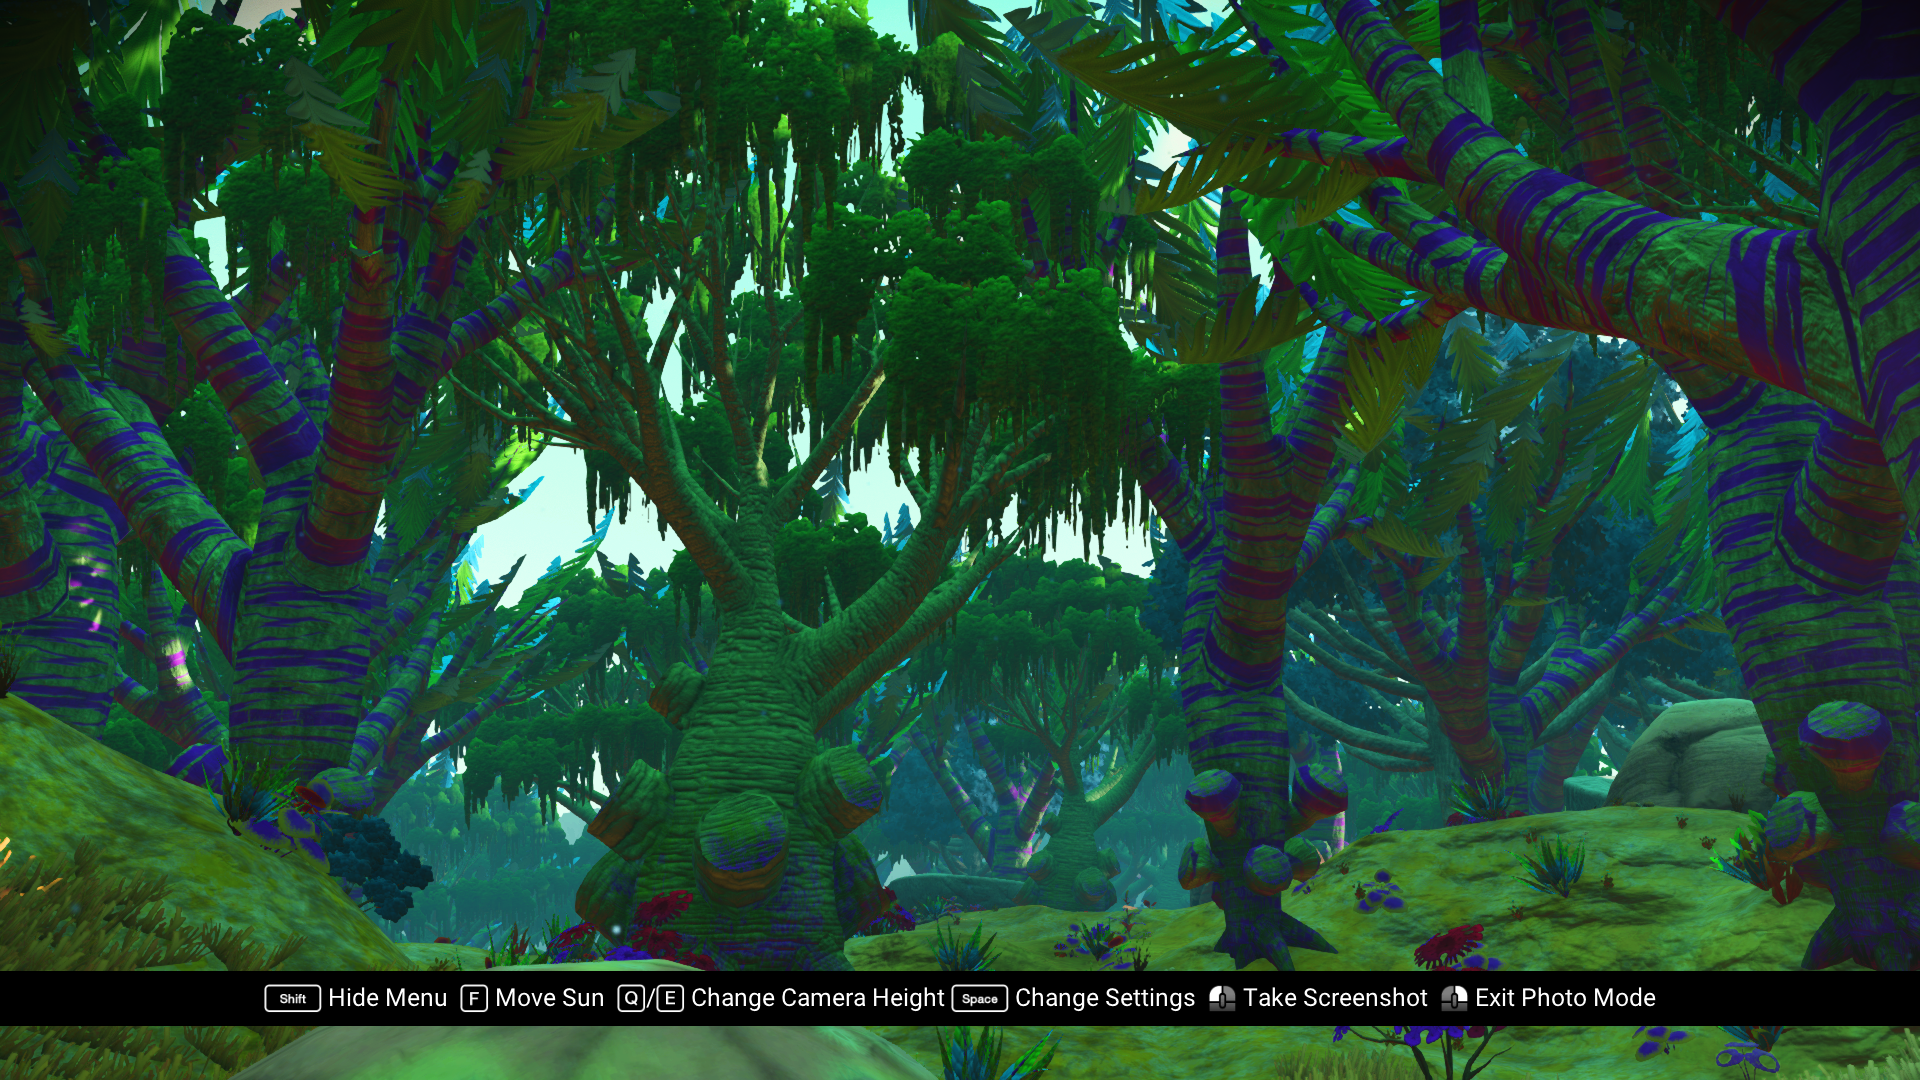 Realistic Plant and Tree Sizes